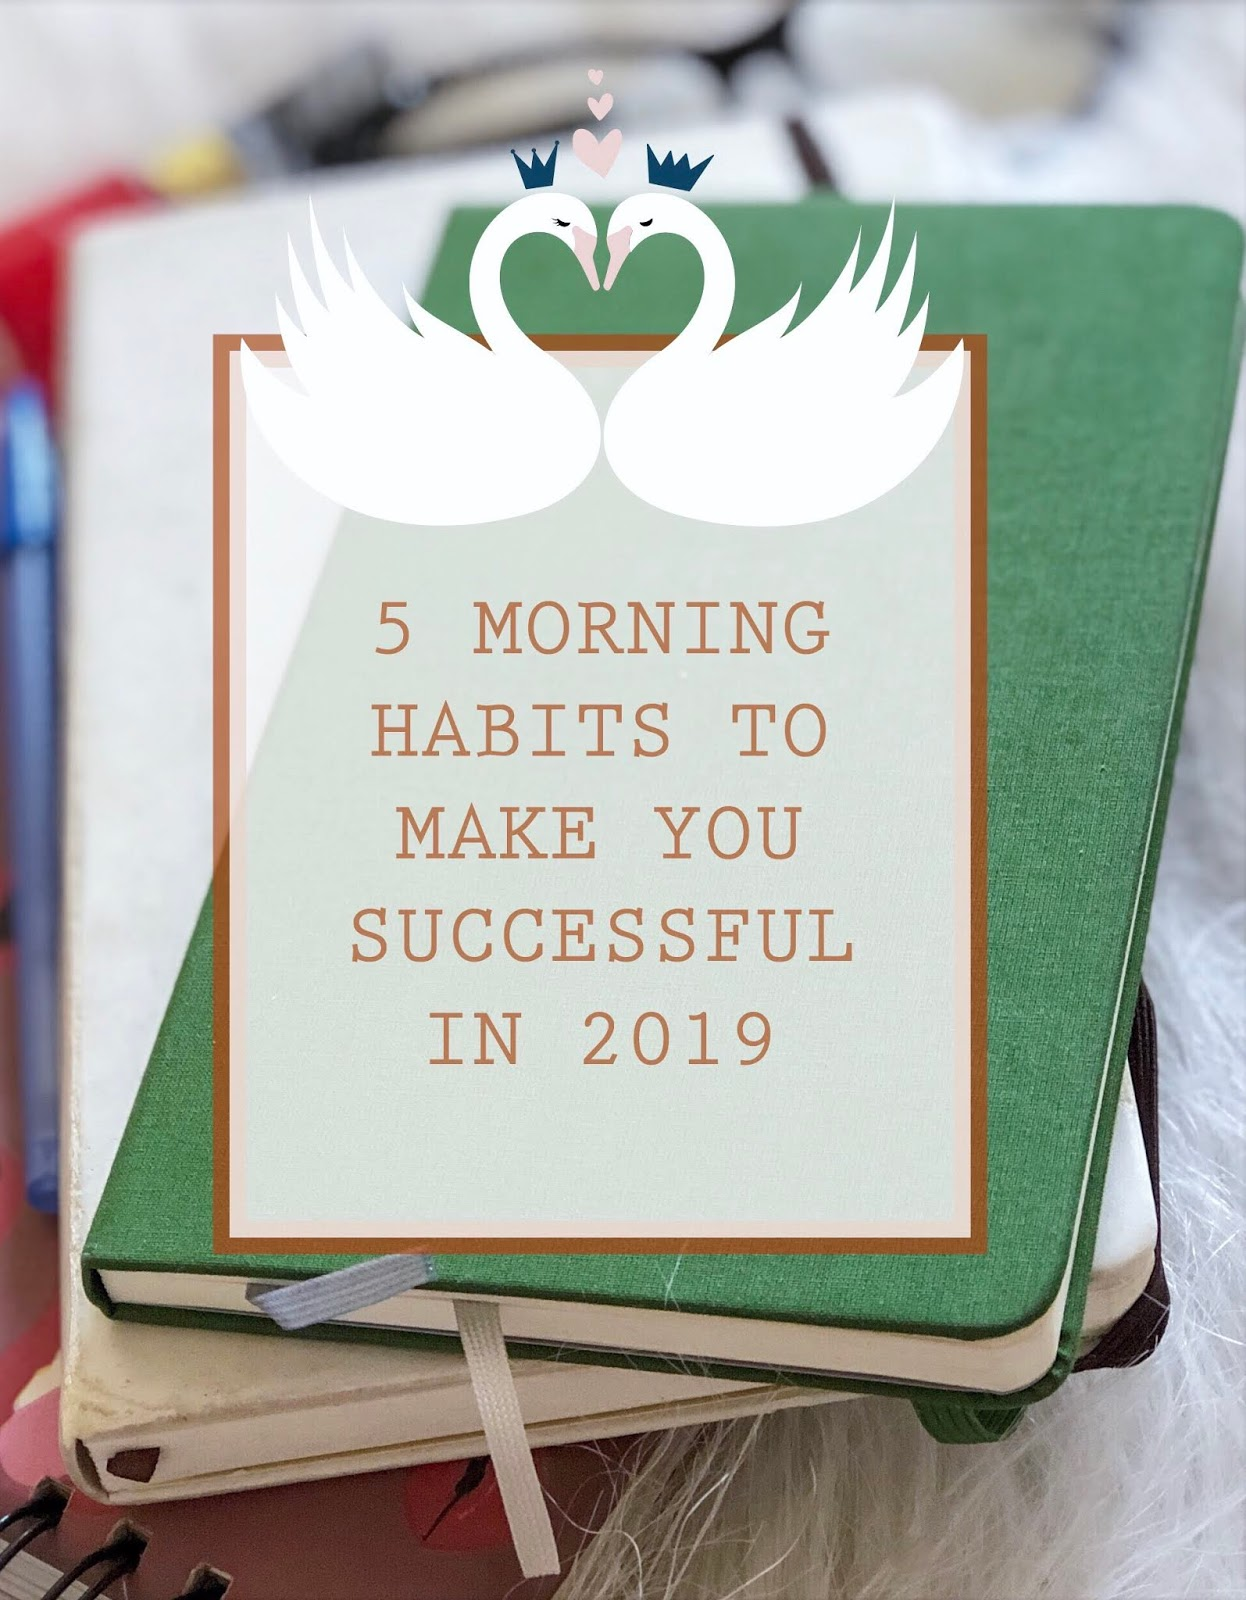 5 MORNING HABITS TO MAKE YOU SUCCESSFUL IN 2019